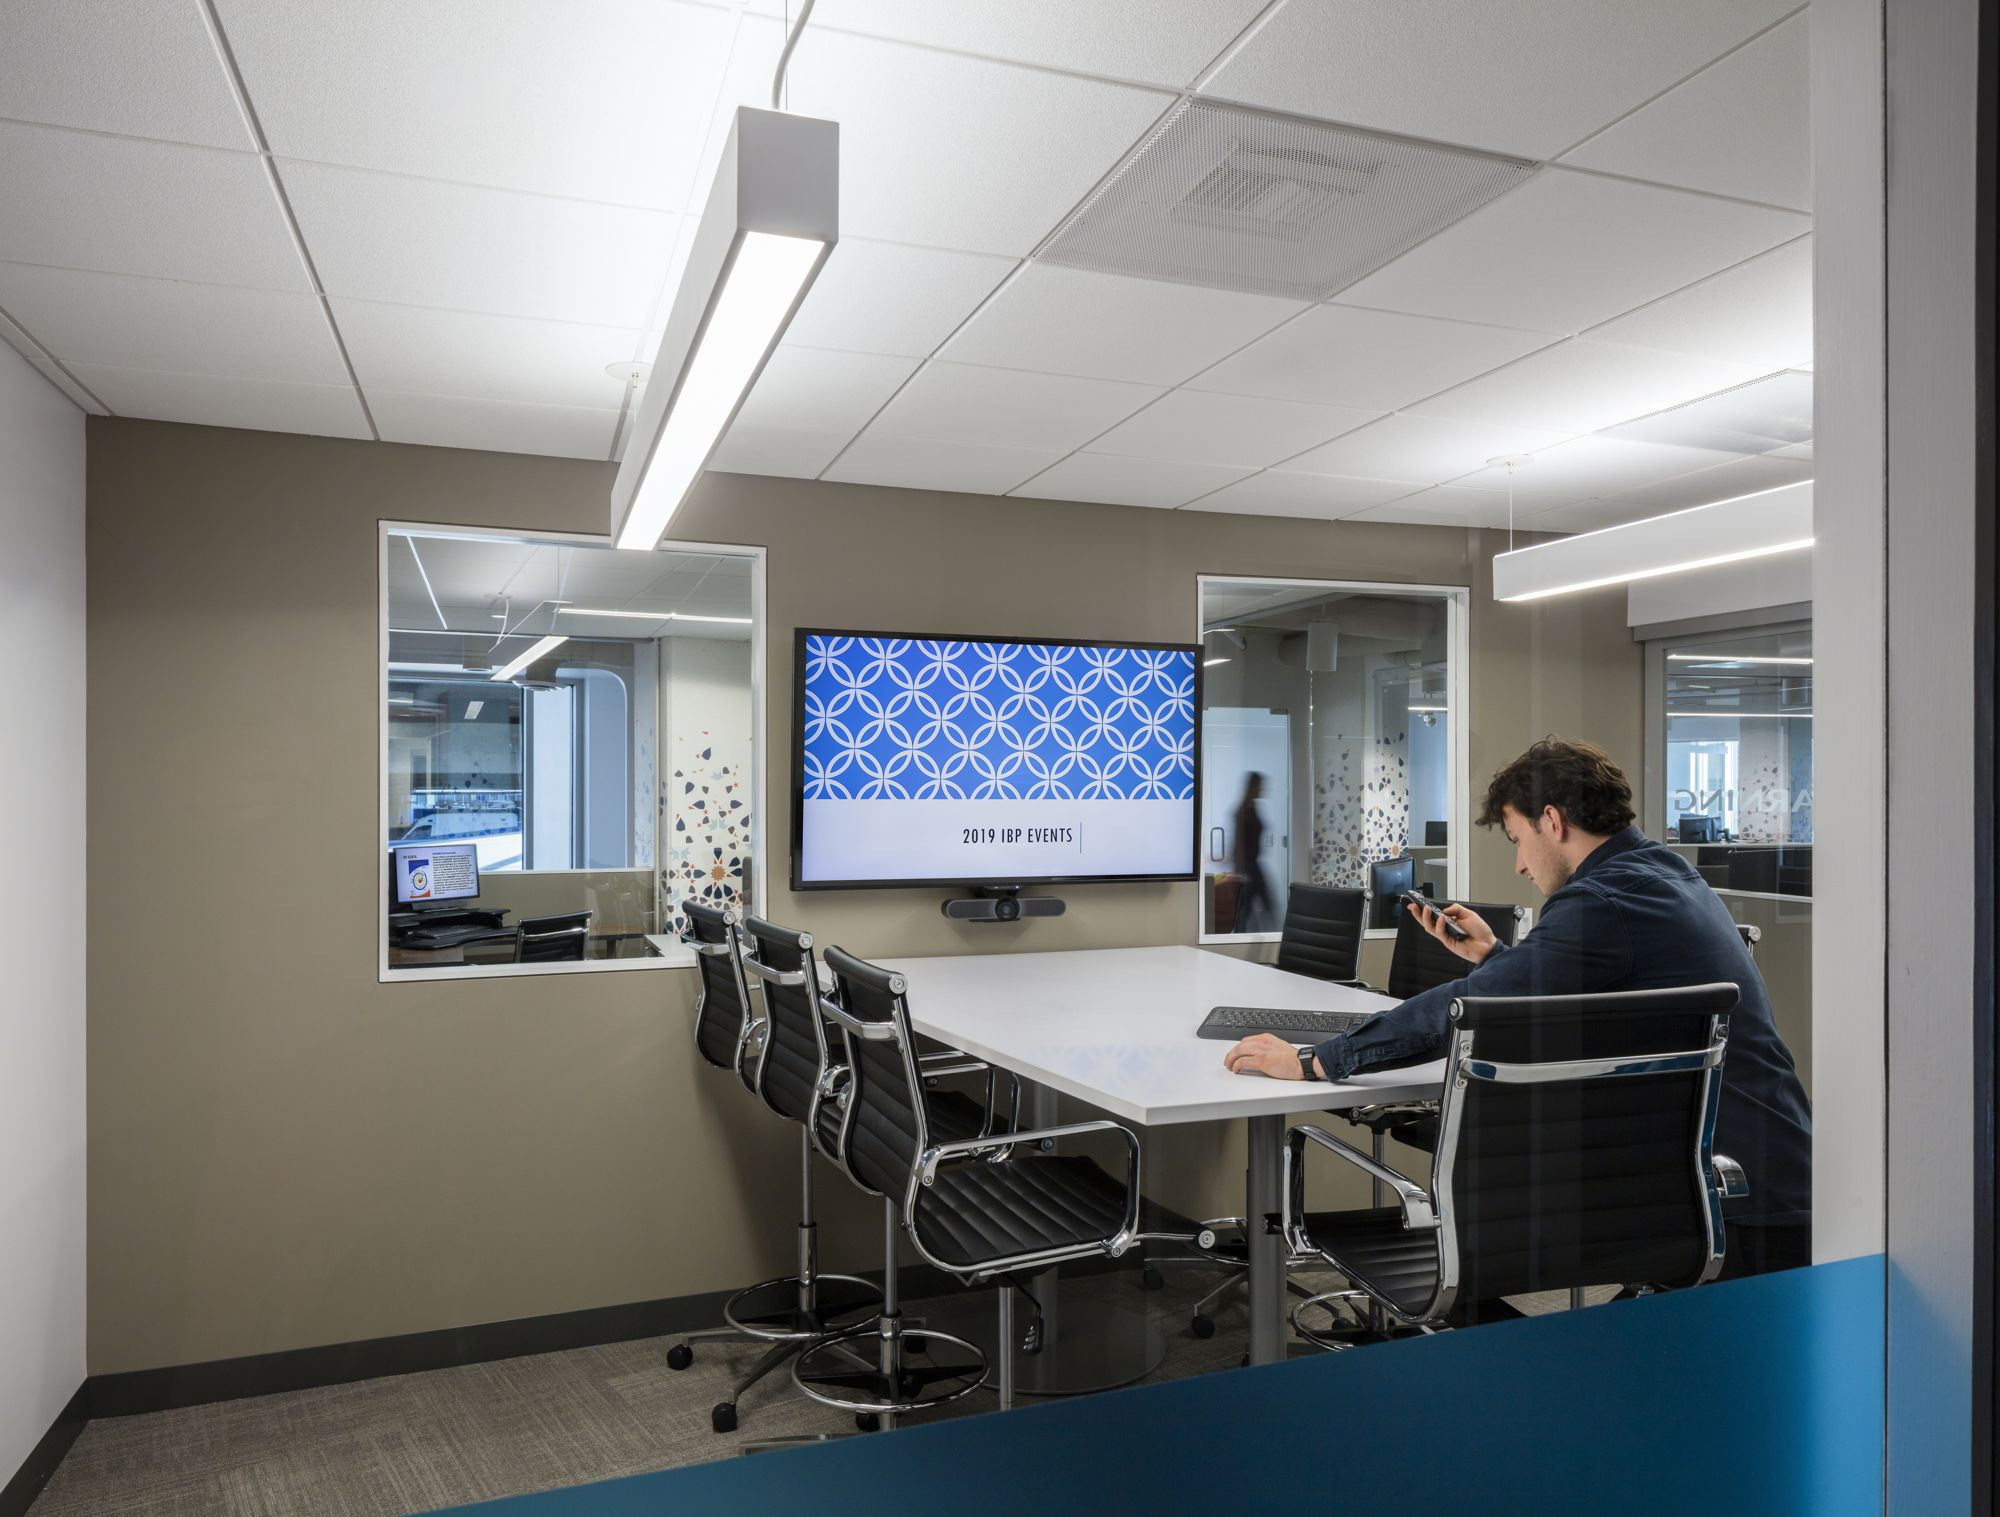 An interior meeting room along the corridor with aligned windows each side to allow focused views from interior out.